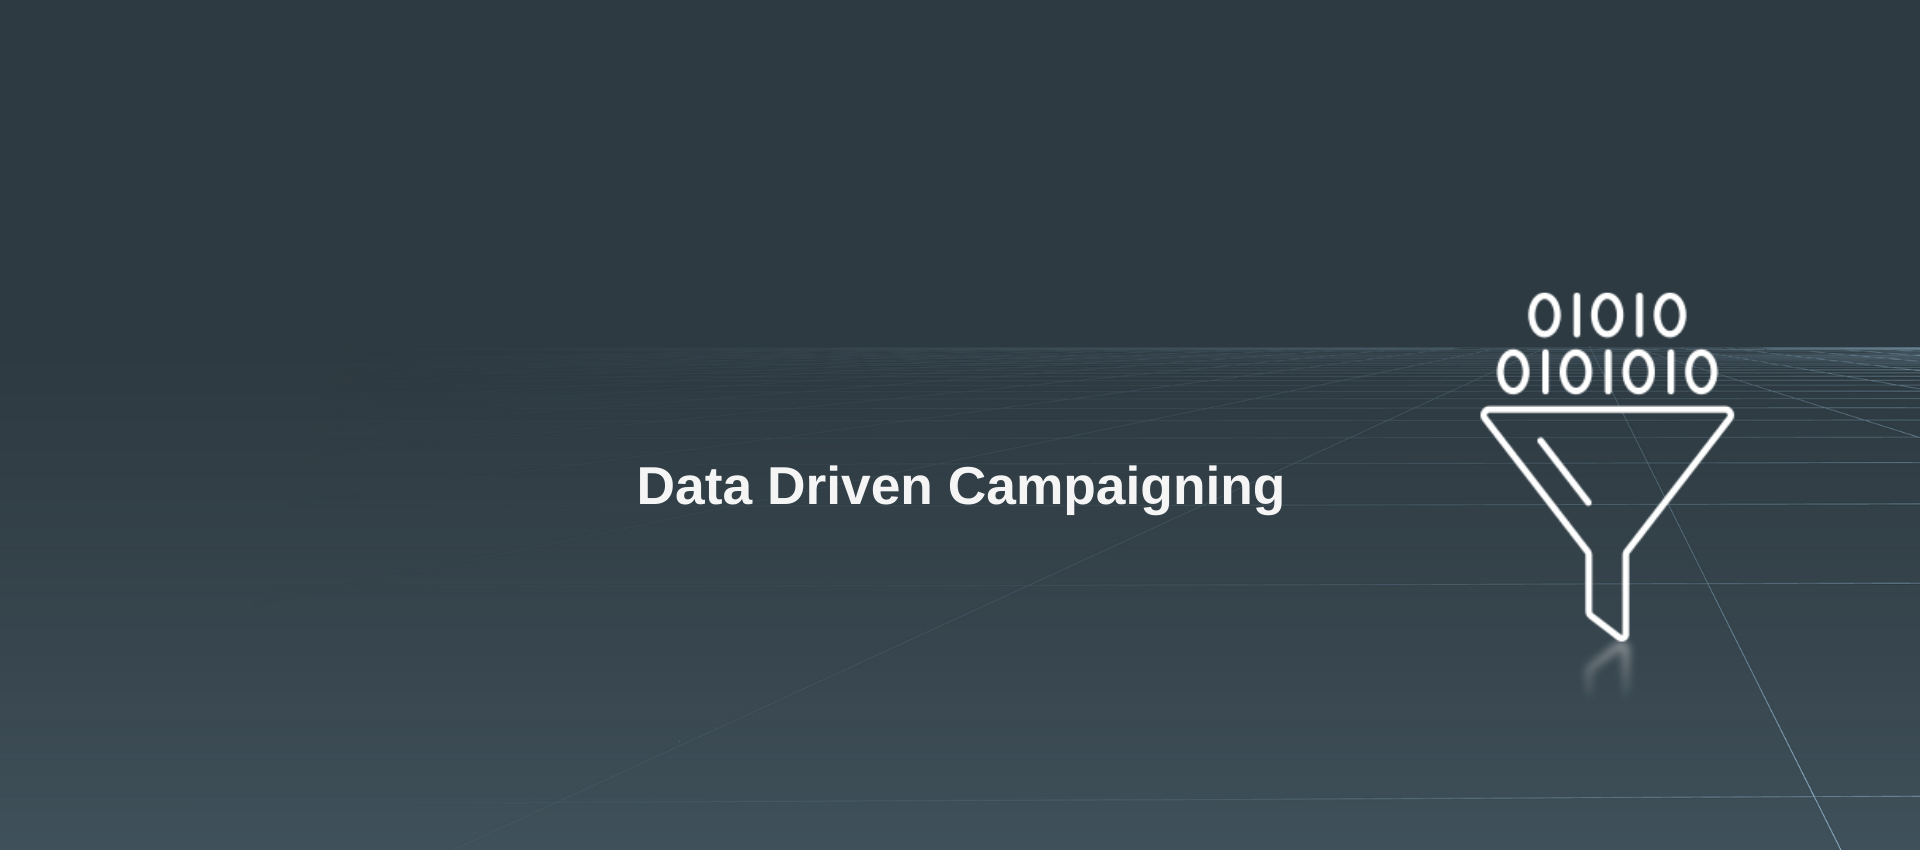 Data Driven Campaigning